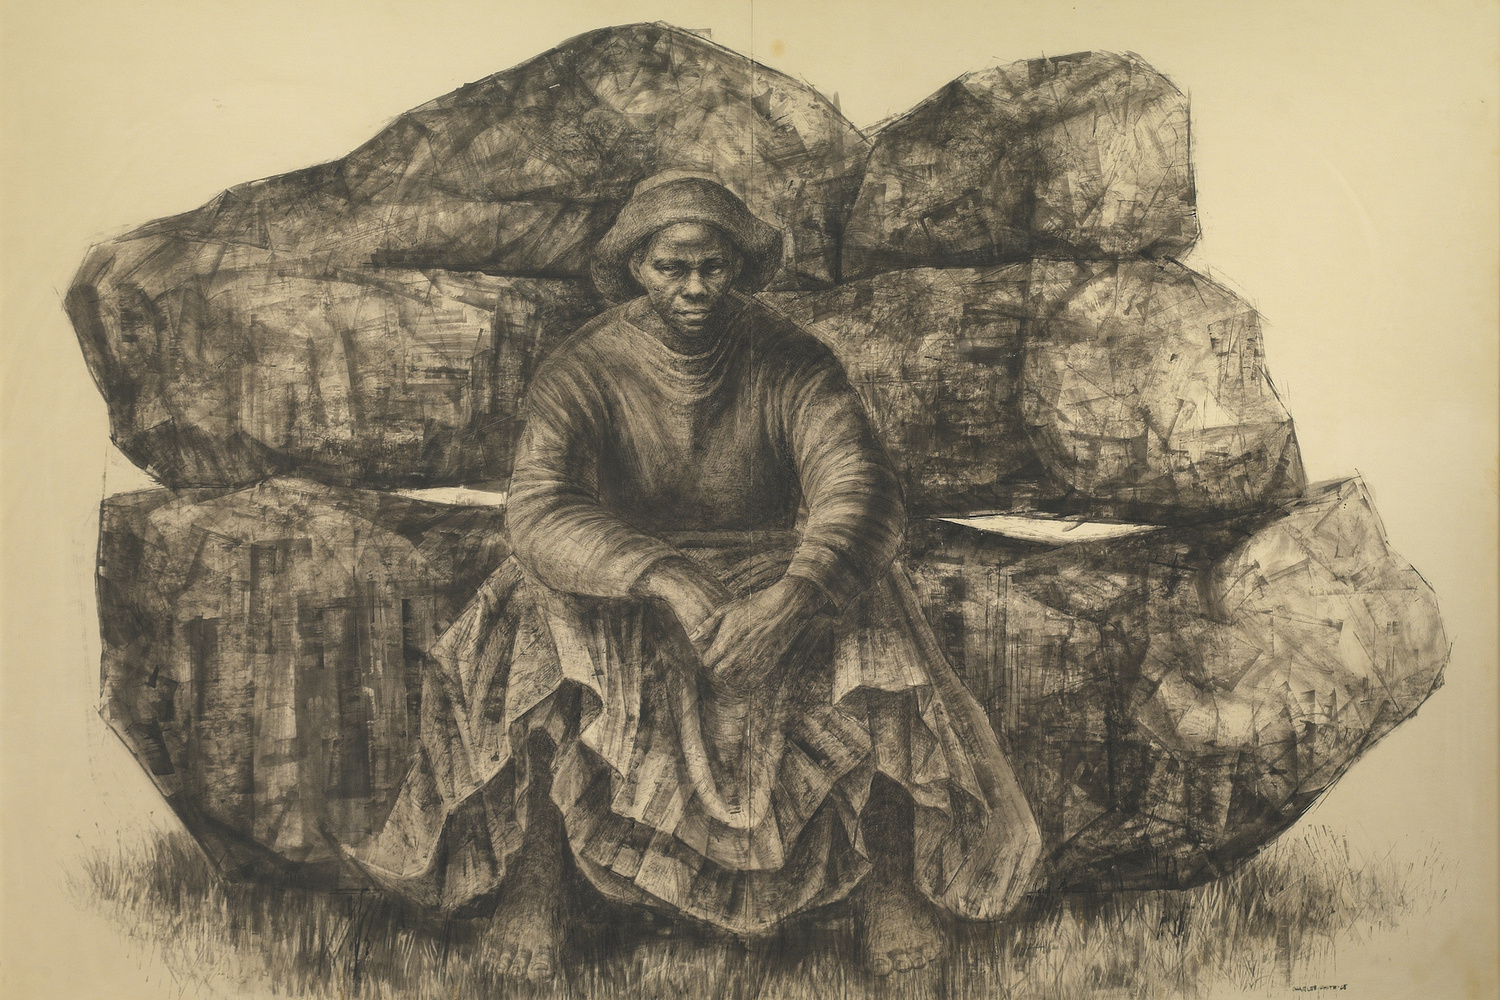 Charles White (American, 1918–1979). General Moses (Harriet Tubman). 1965. Ink on paper, 47 × 68″ (119.4 × 172.7 cm). Private collection. © The Charles White Archives. Photo courtesy of Swann Auction Galleries